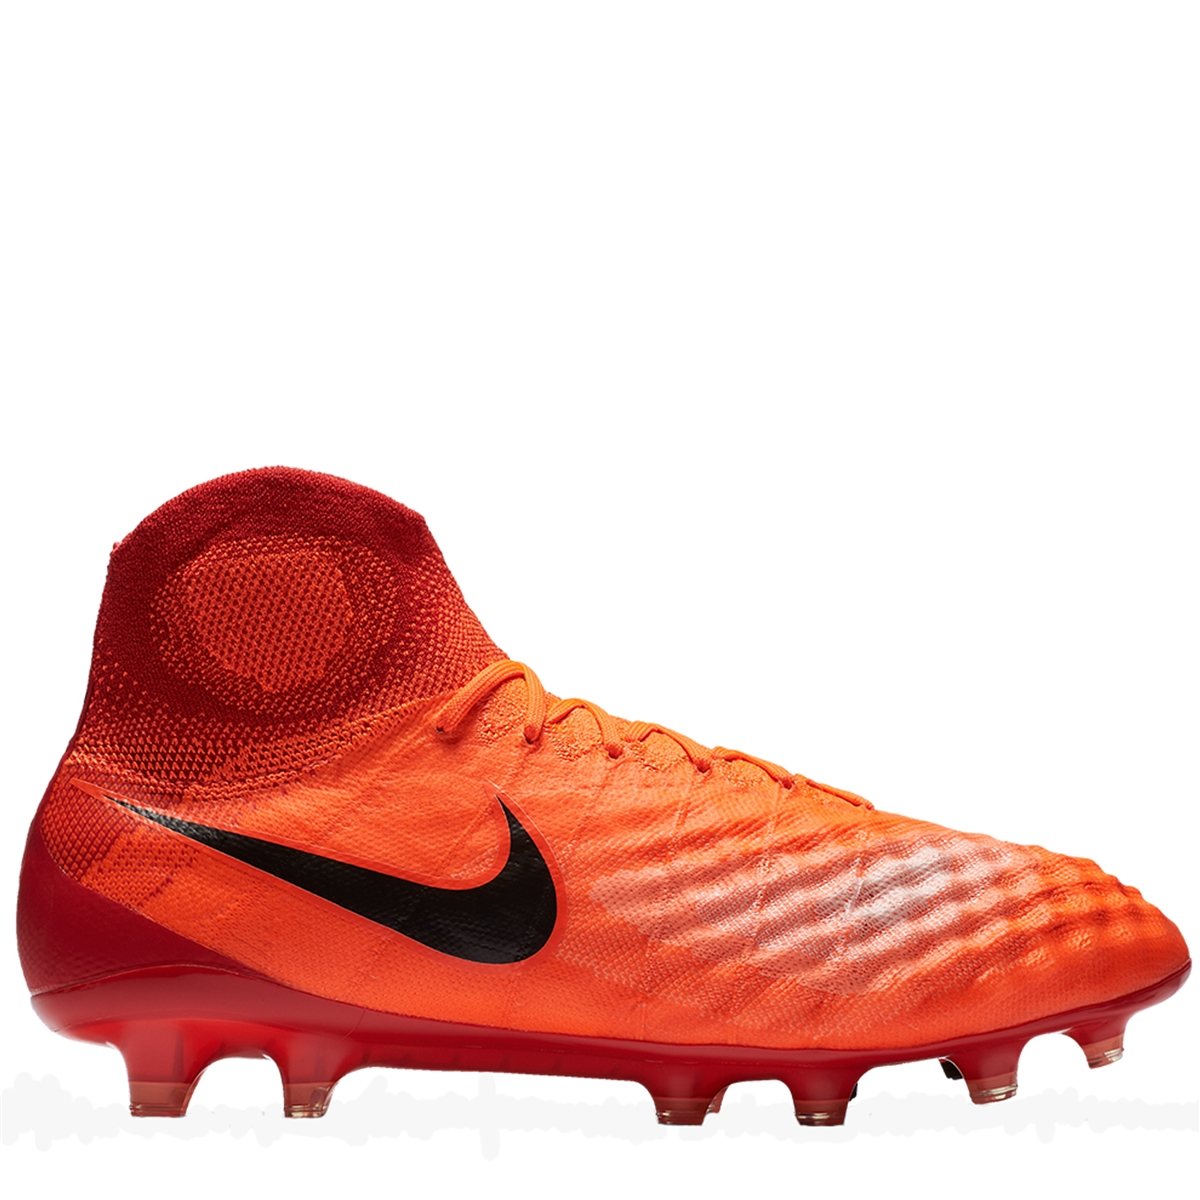 Nike Magista Obra II FG Soccer Cleats (Total CrimsonBlackUniversity Red)